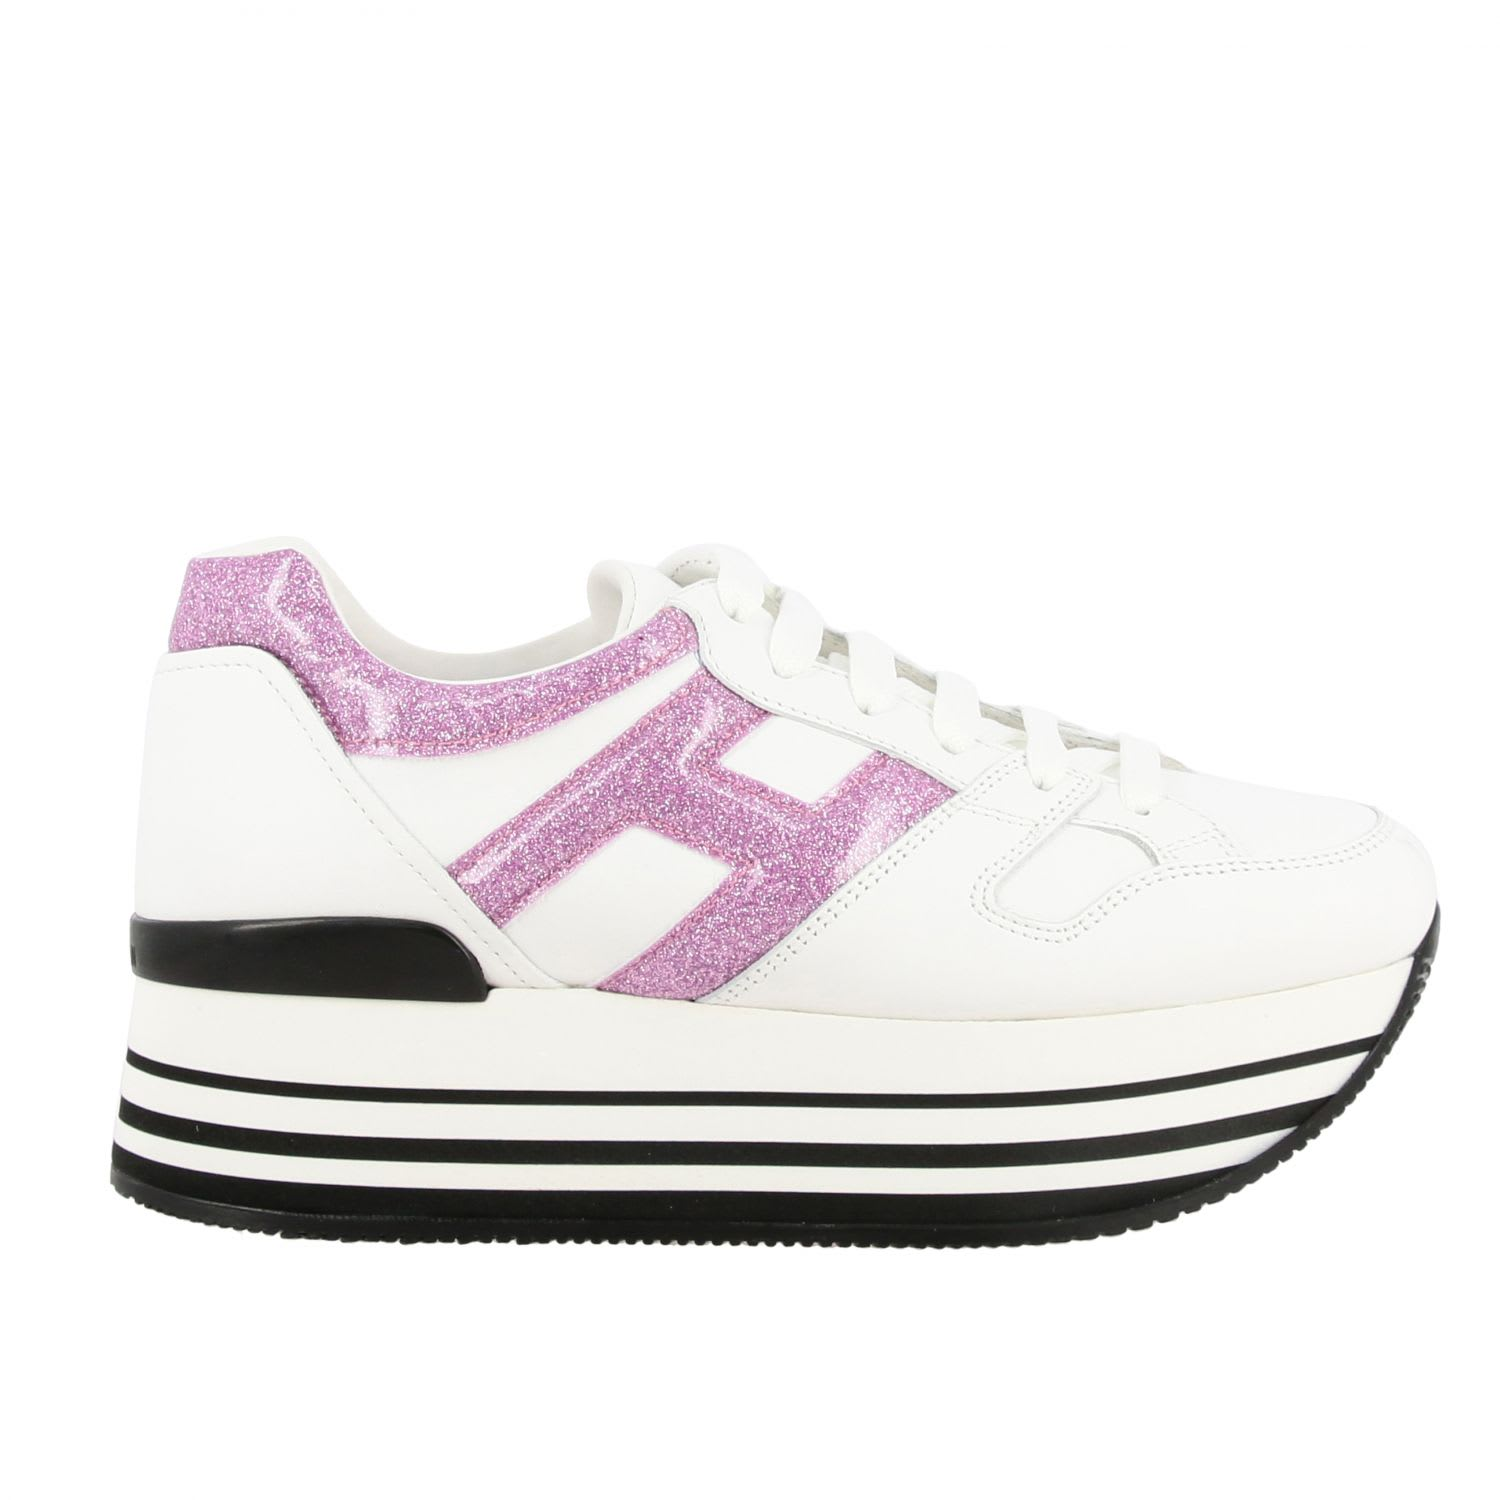 Hogan 283 Platform Sneakers In Leather With Big Glitter H In White ...